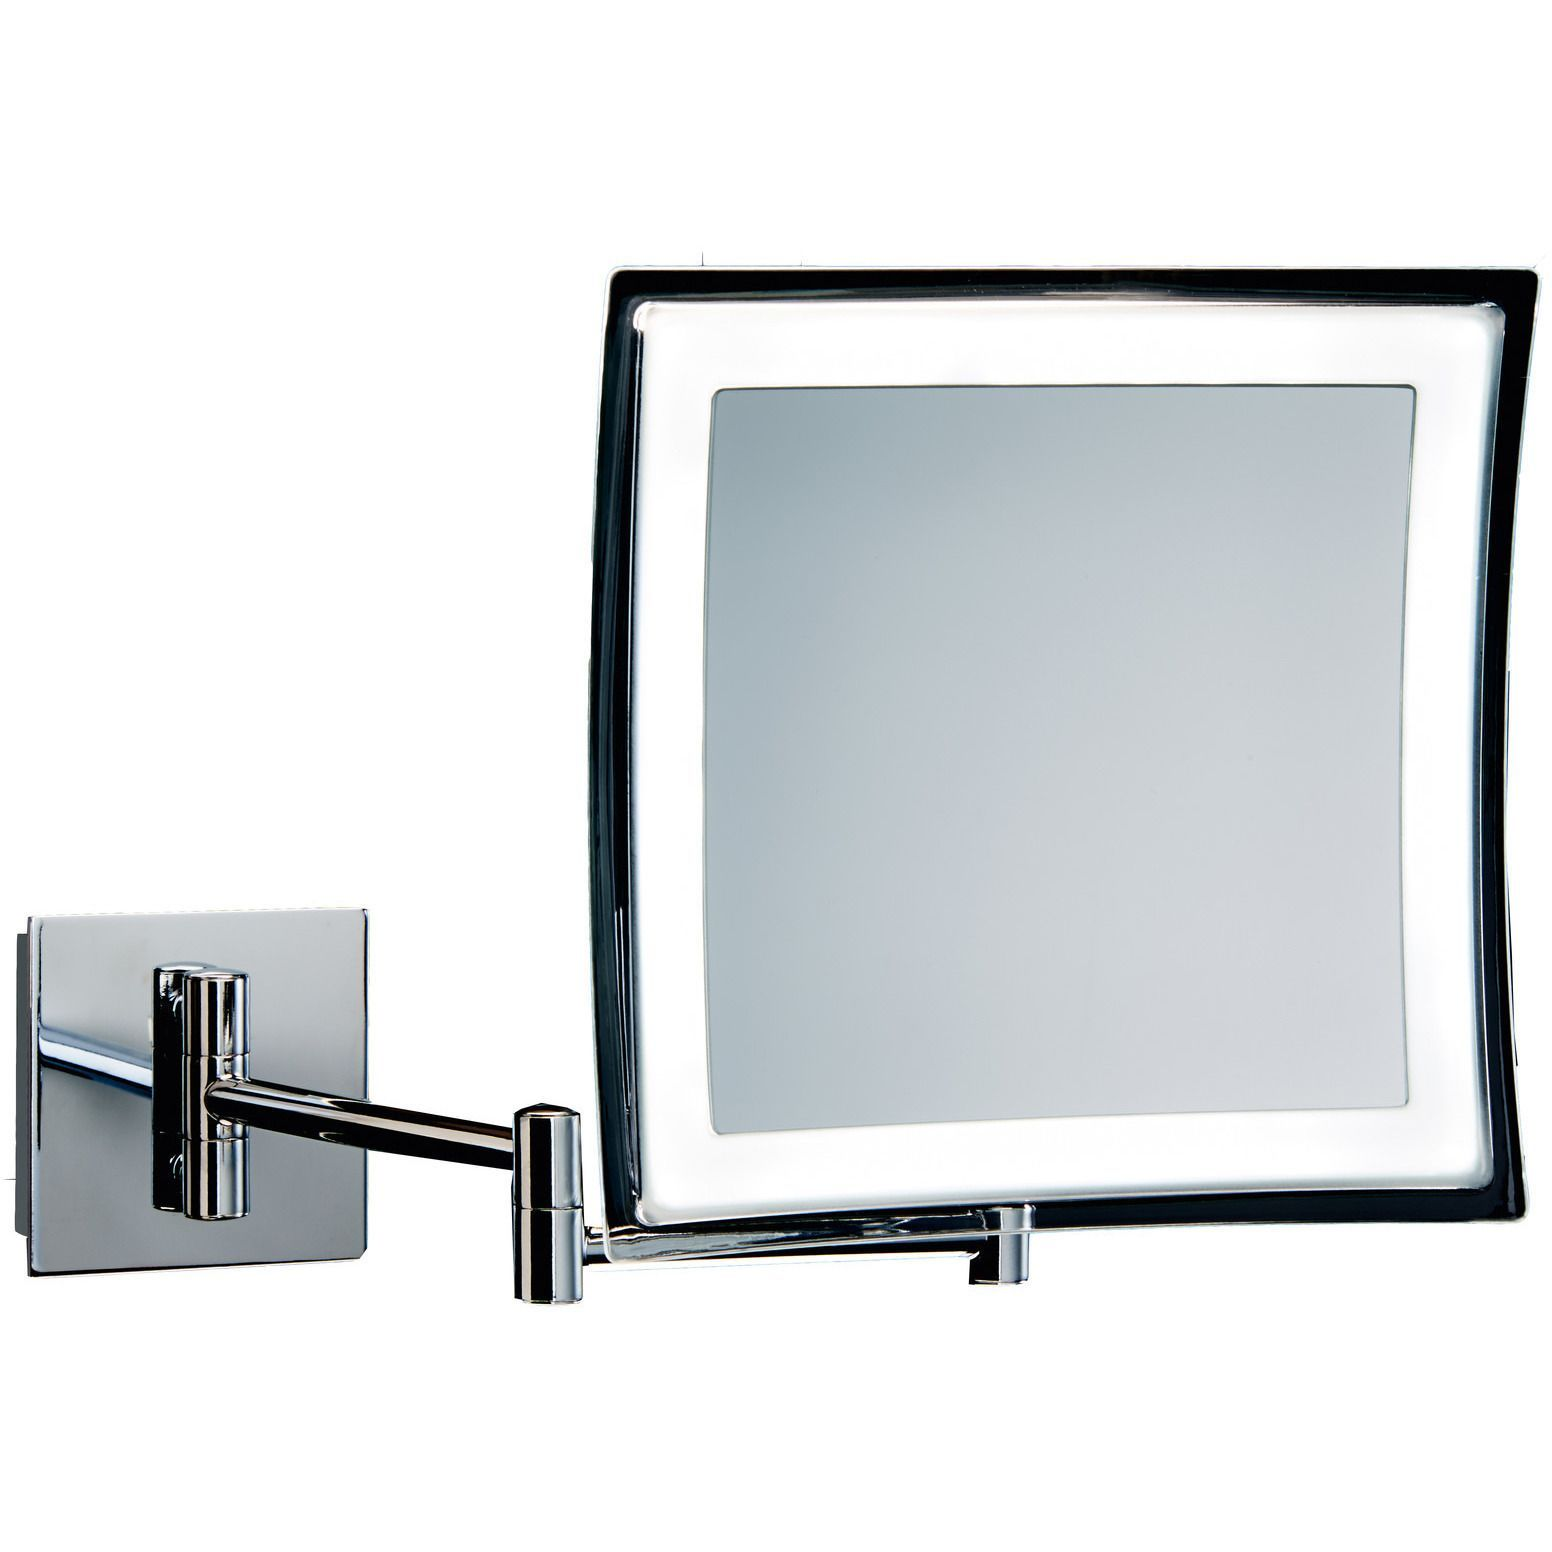 Dwba square wall mounted cosmetic makeup 5x led light magnifying dwba square wall mounted cosmetic makeup 5x led light magnifying mirror chrome aloadofball Choice Image